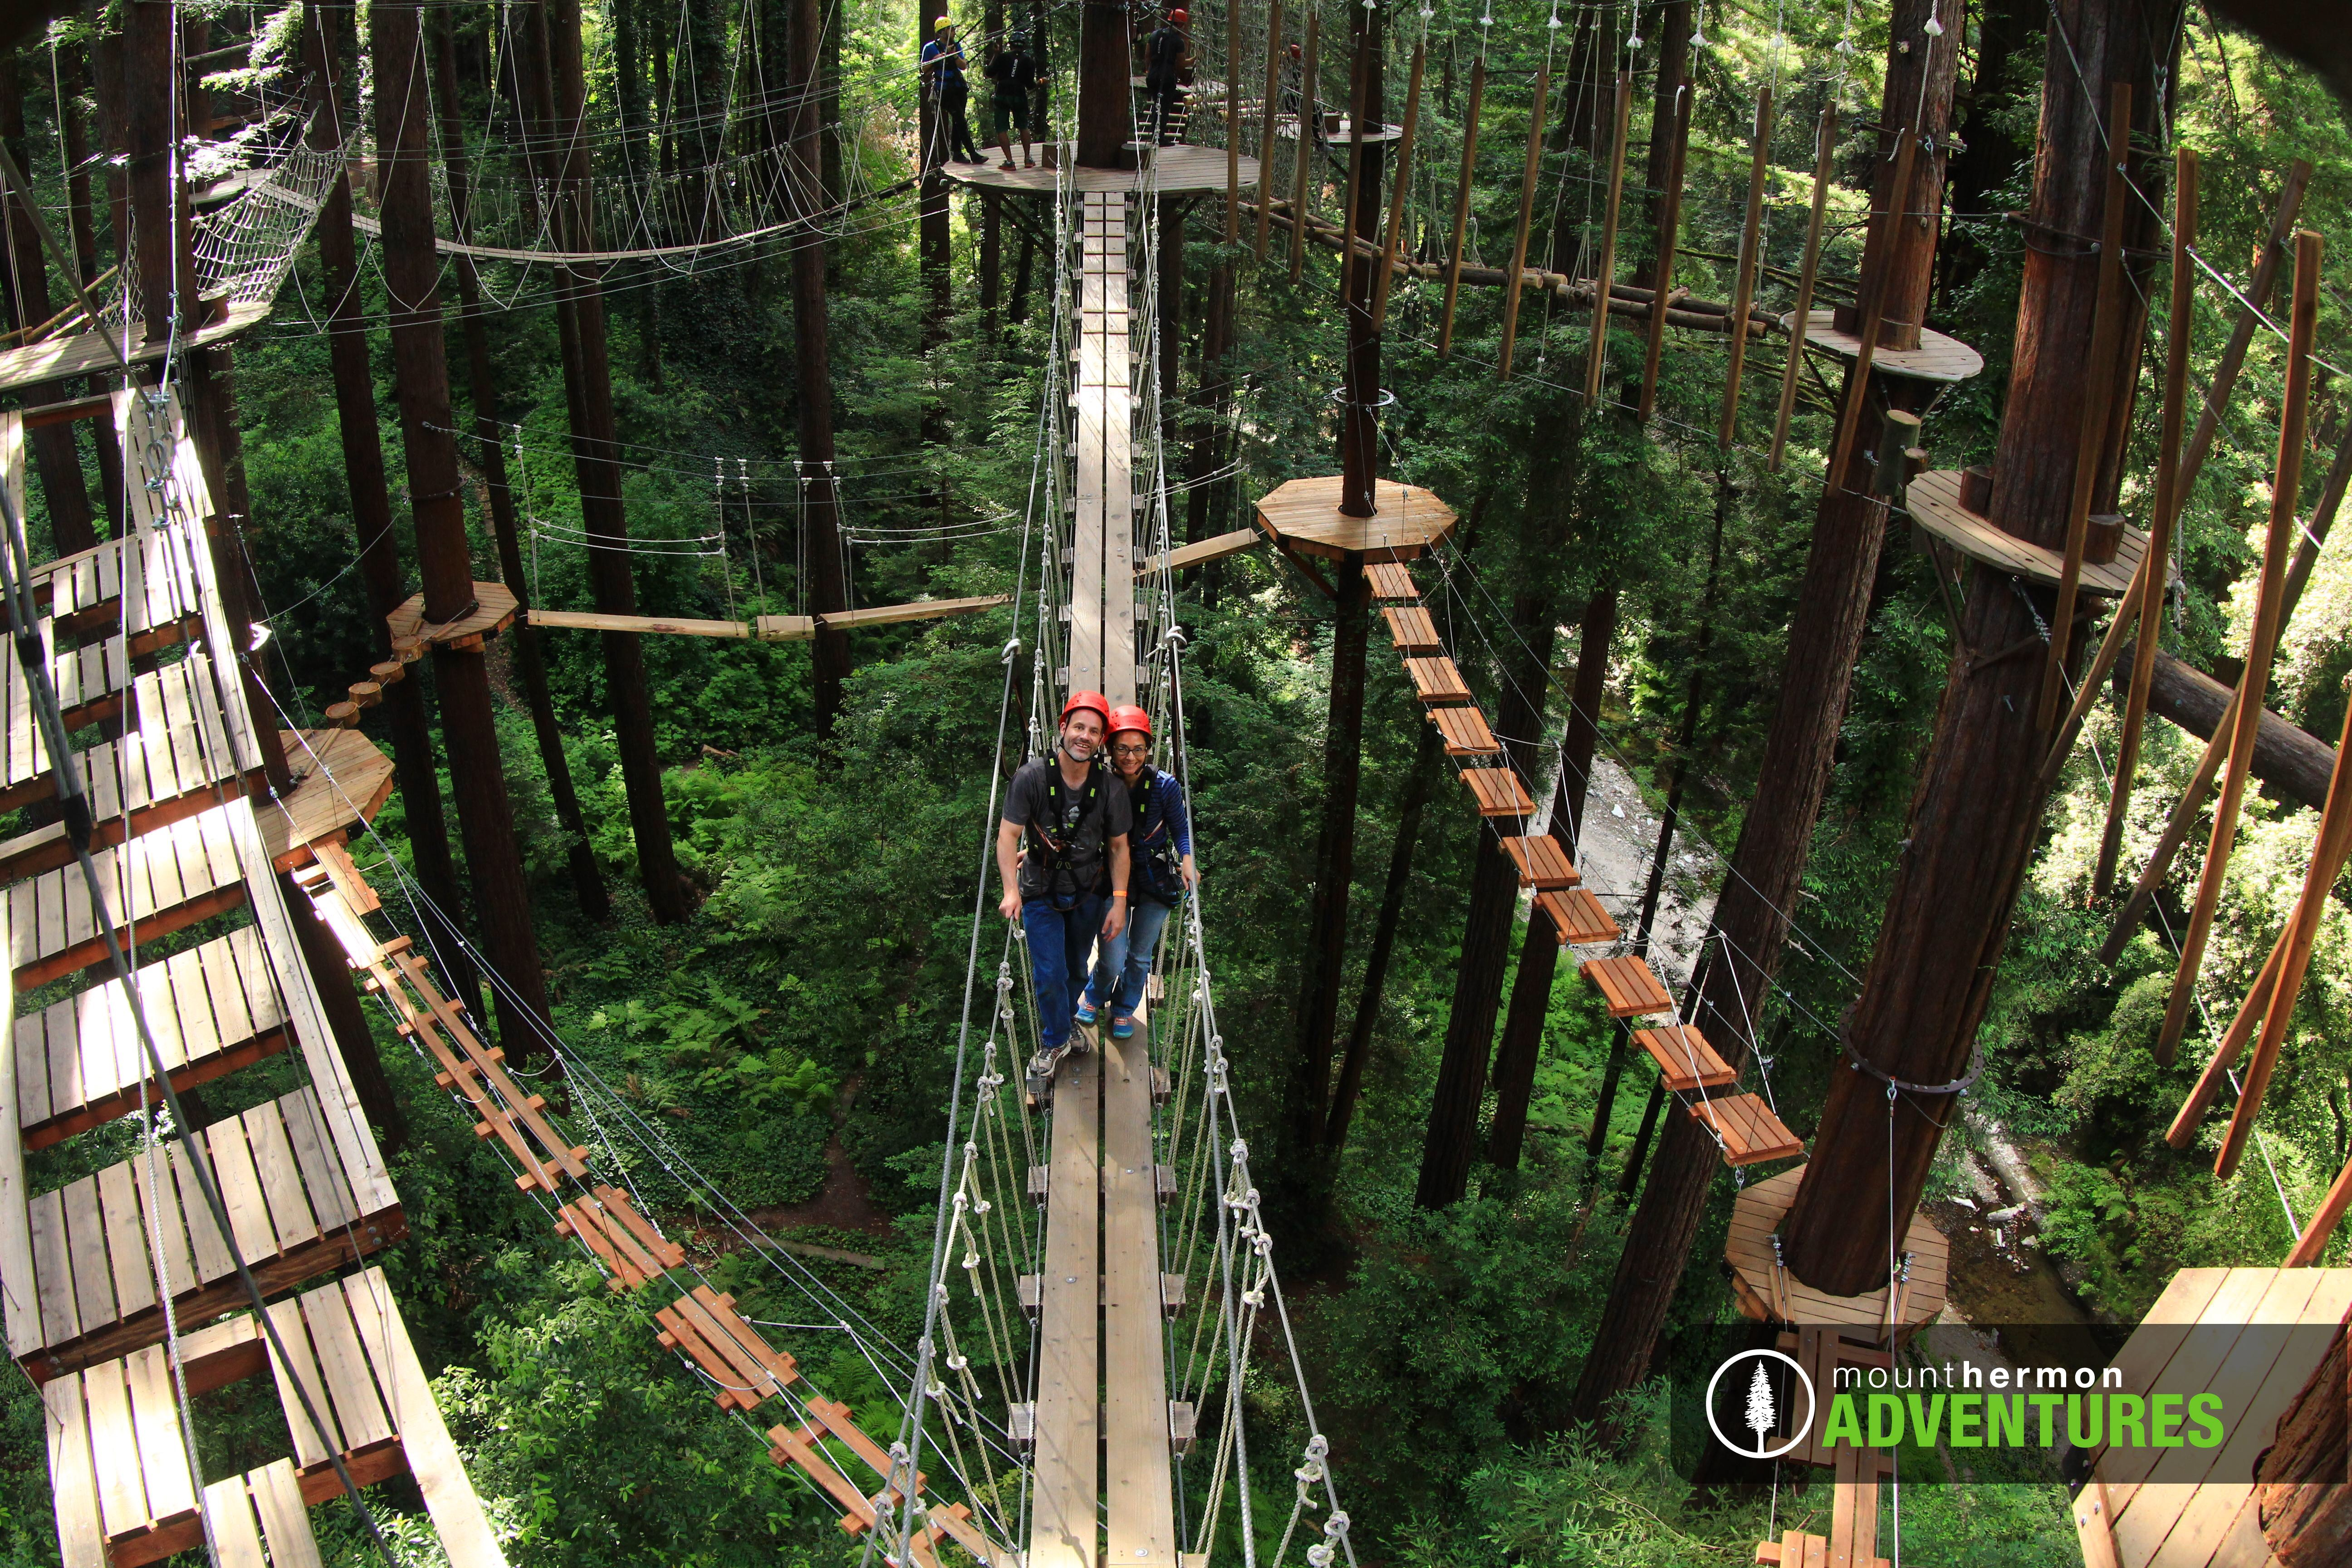 Juicer pulp muffins, a tree top adventure, and Bavarian dinner